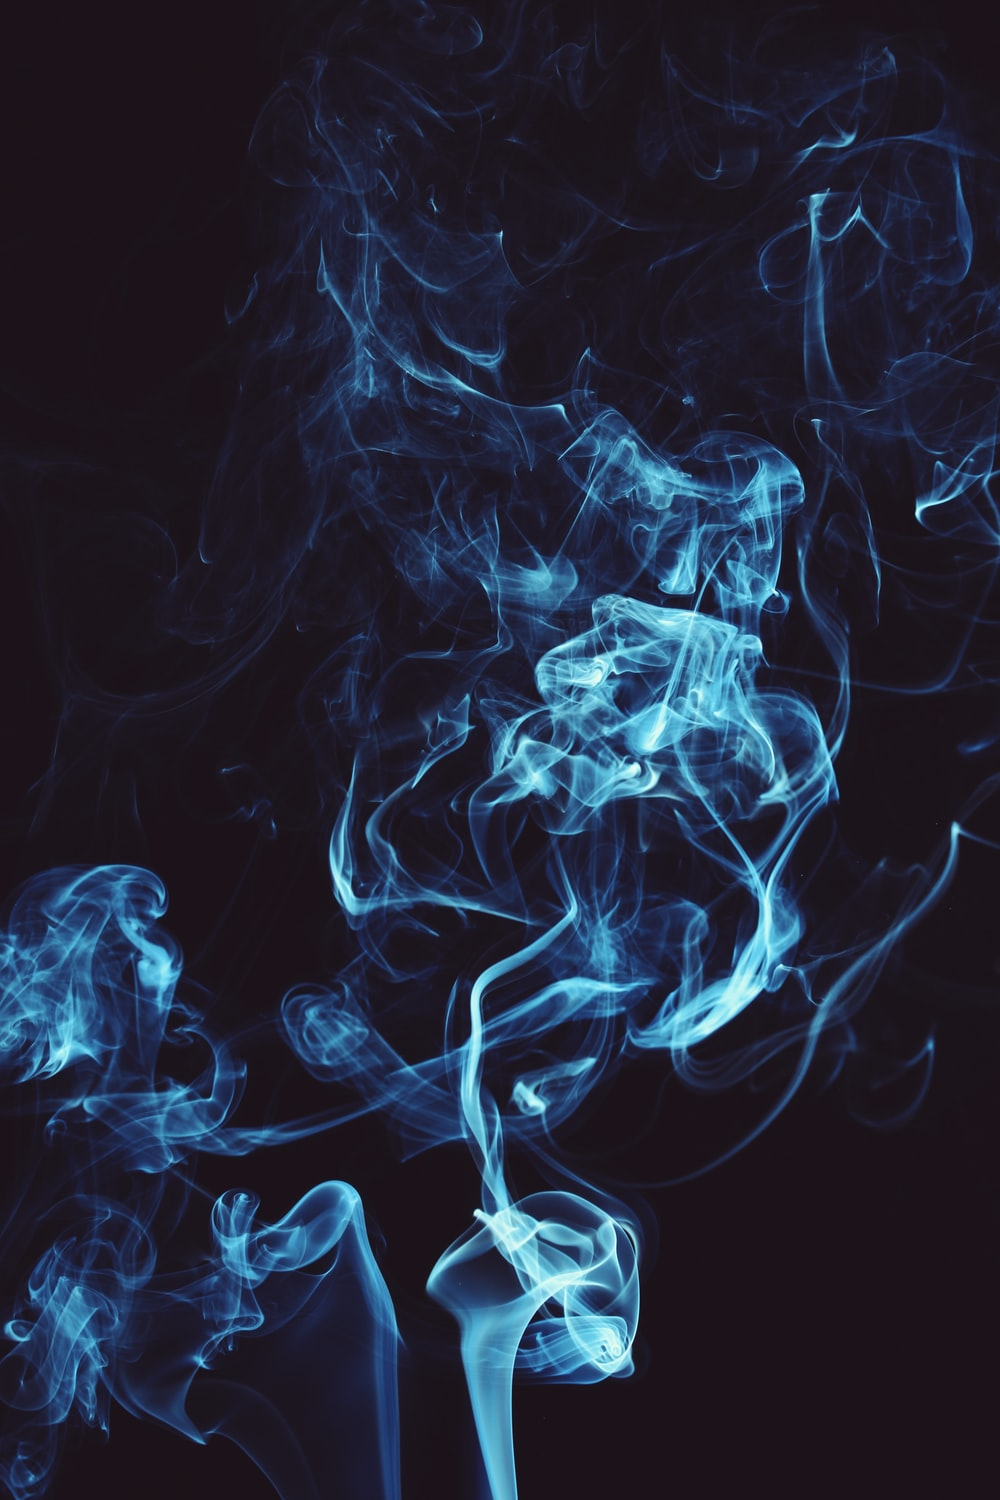 20 Smoke Images Hd Download Free Pictures On Unsplash